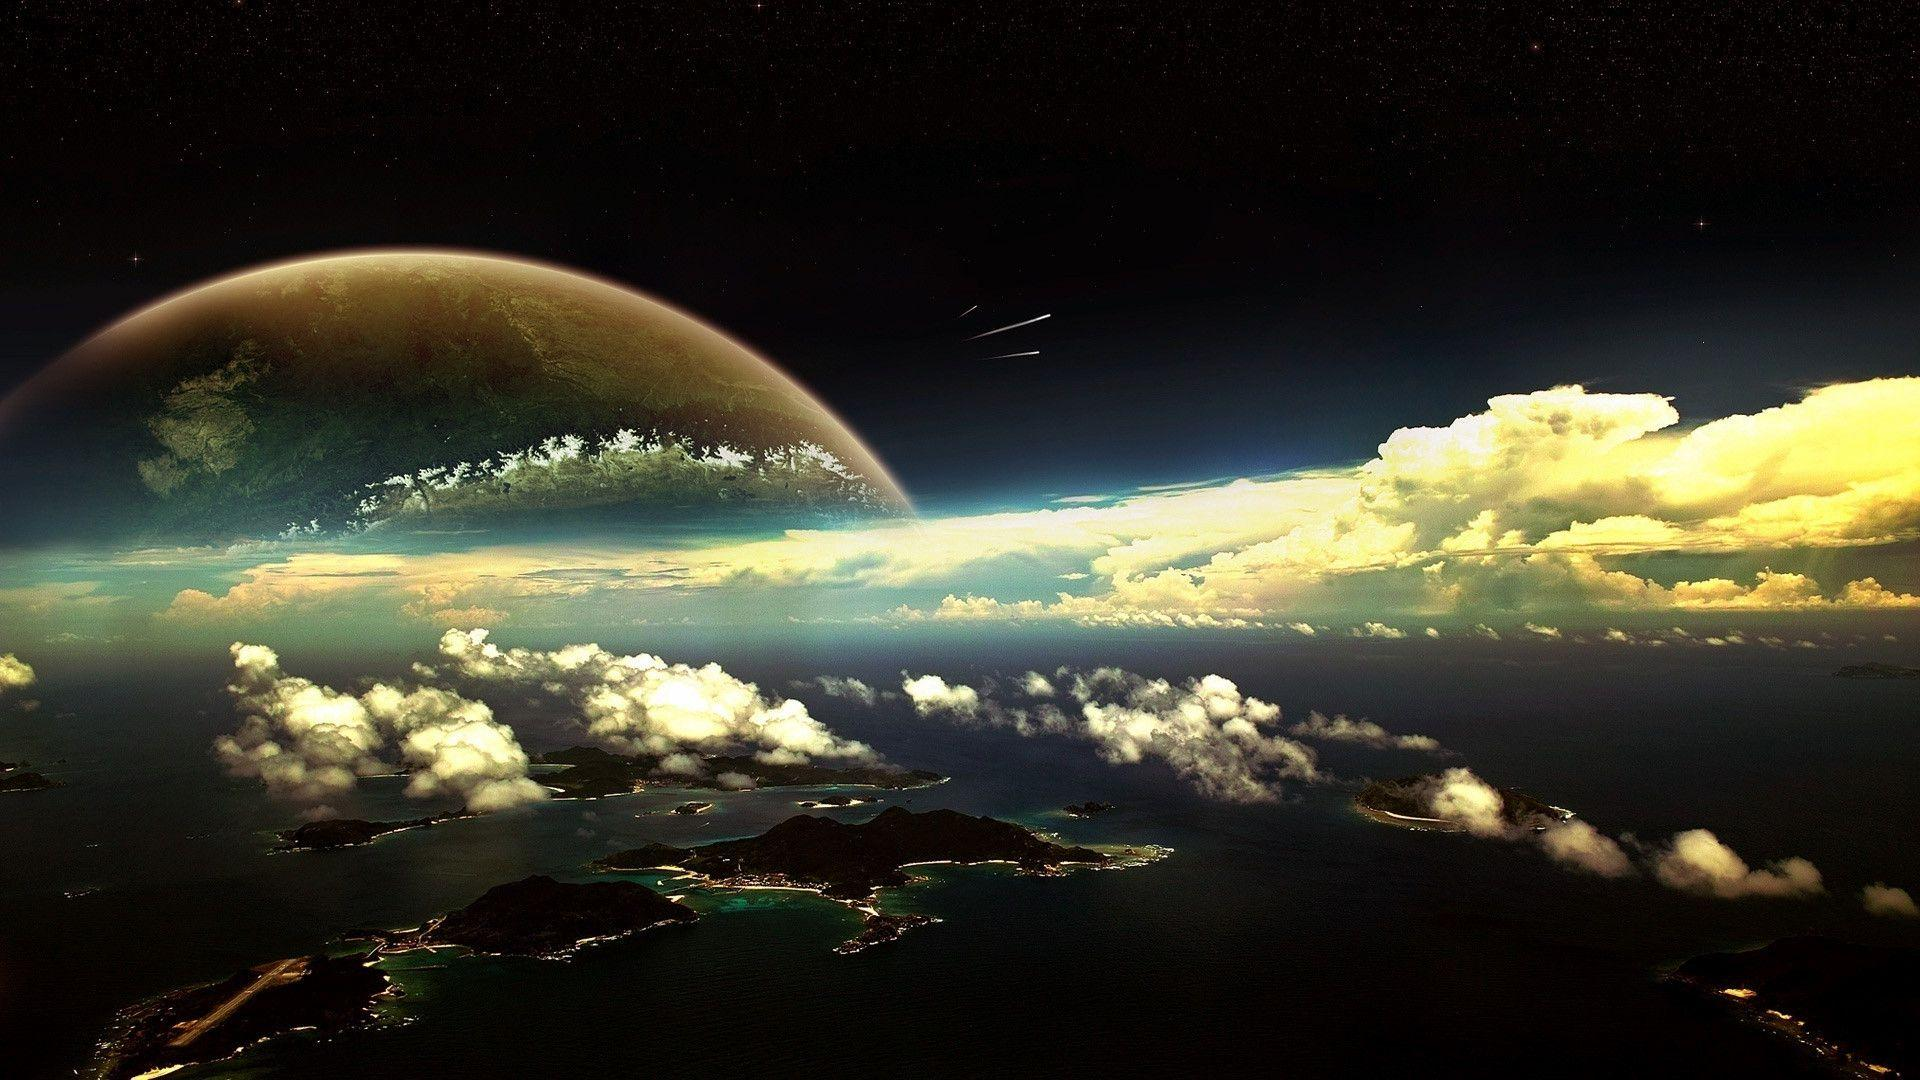 Fantasy Planet Wallpapers 1920x1080